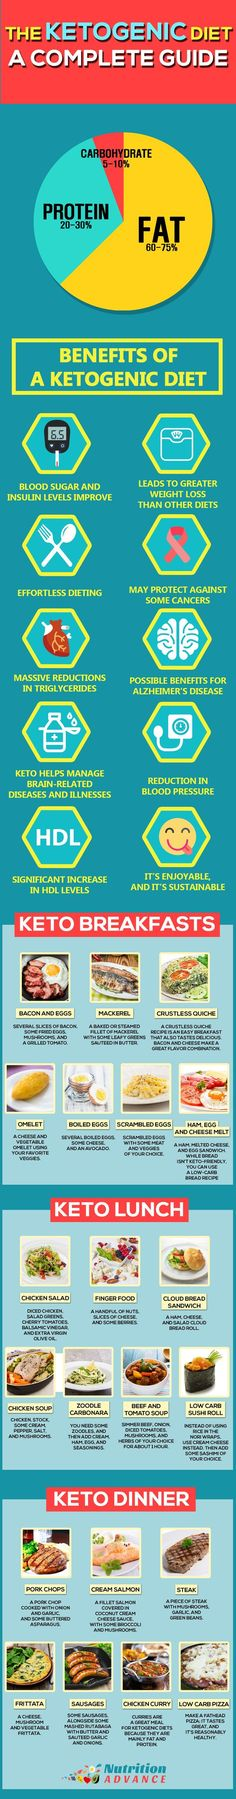 The Ketogenic Diet: An Ultimate Guide. This infographic shows some of the benefits of a Ketogenic Diet alongside a meal plan for 7 days featuring breakfasts, lunches, and dinners. You can find all of this info and a lot more on keto and low carb living in the main article at http://nutritionadvance.com/ketogenic-diet-ultimate-guide-to-keto/